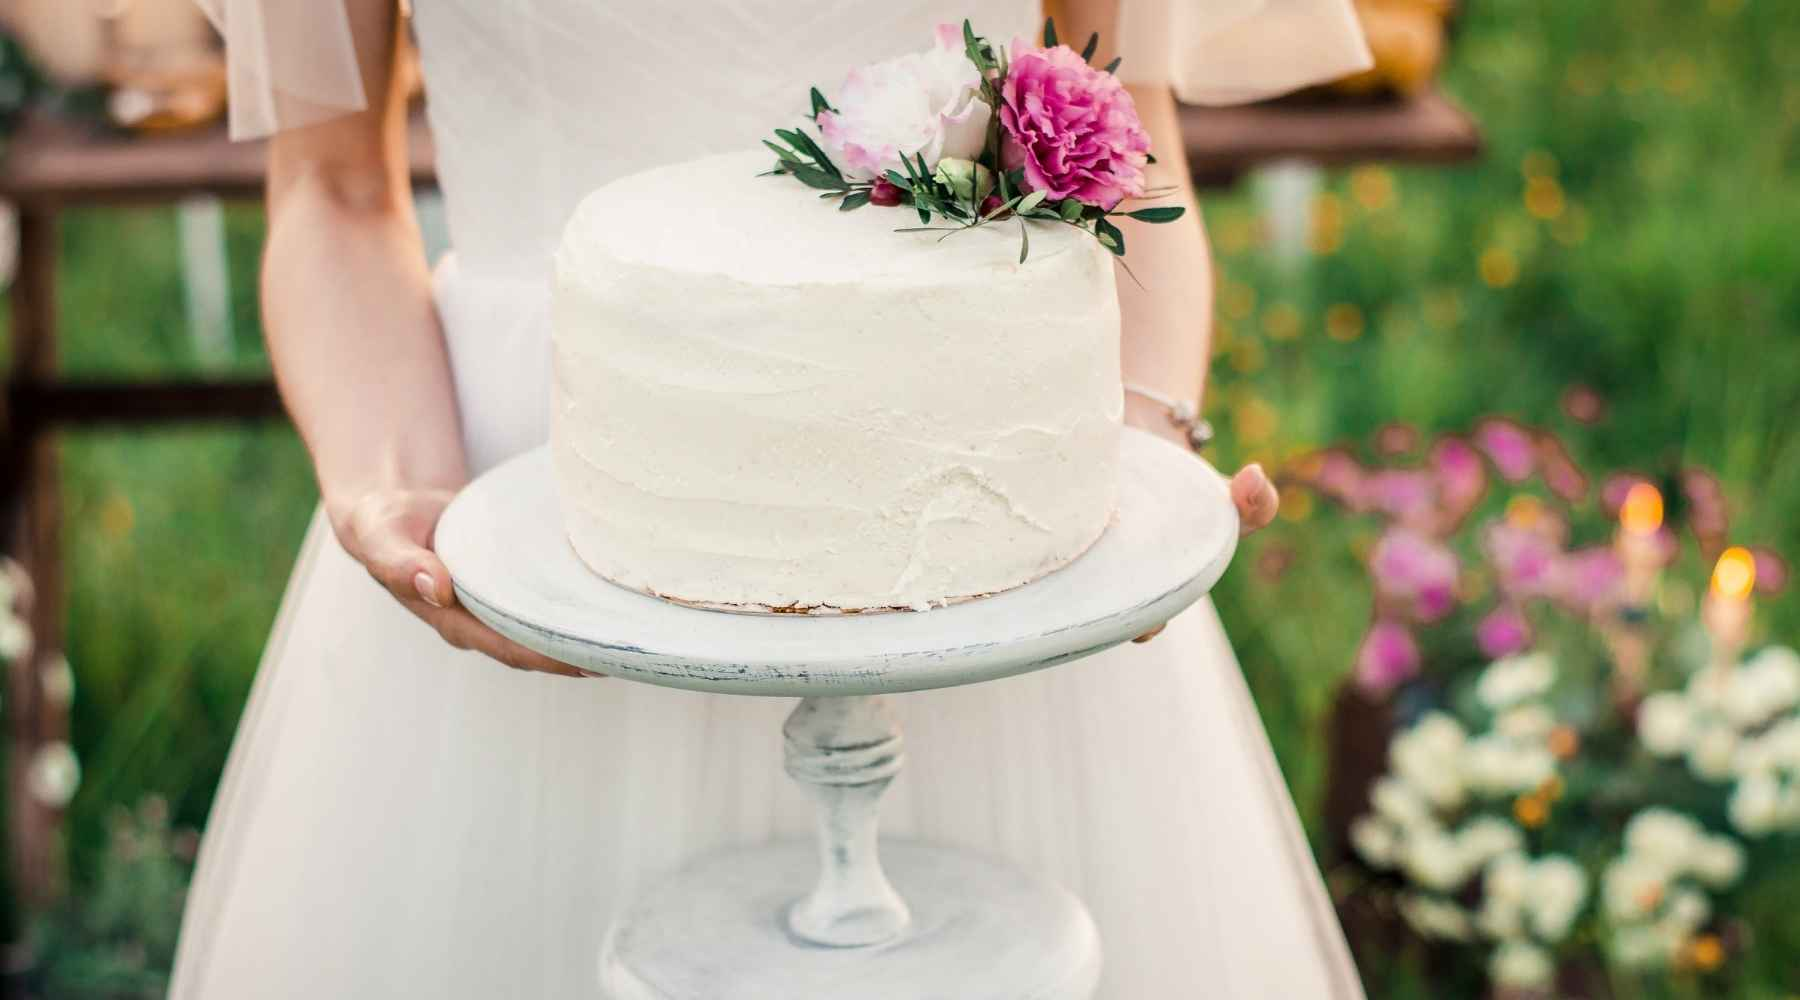 cake ideas - Creative ways to save money on your wedding: Top 20